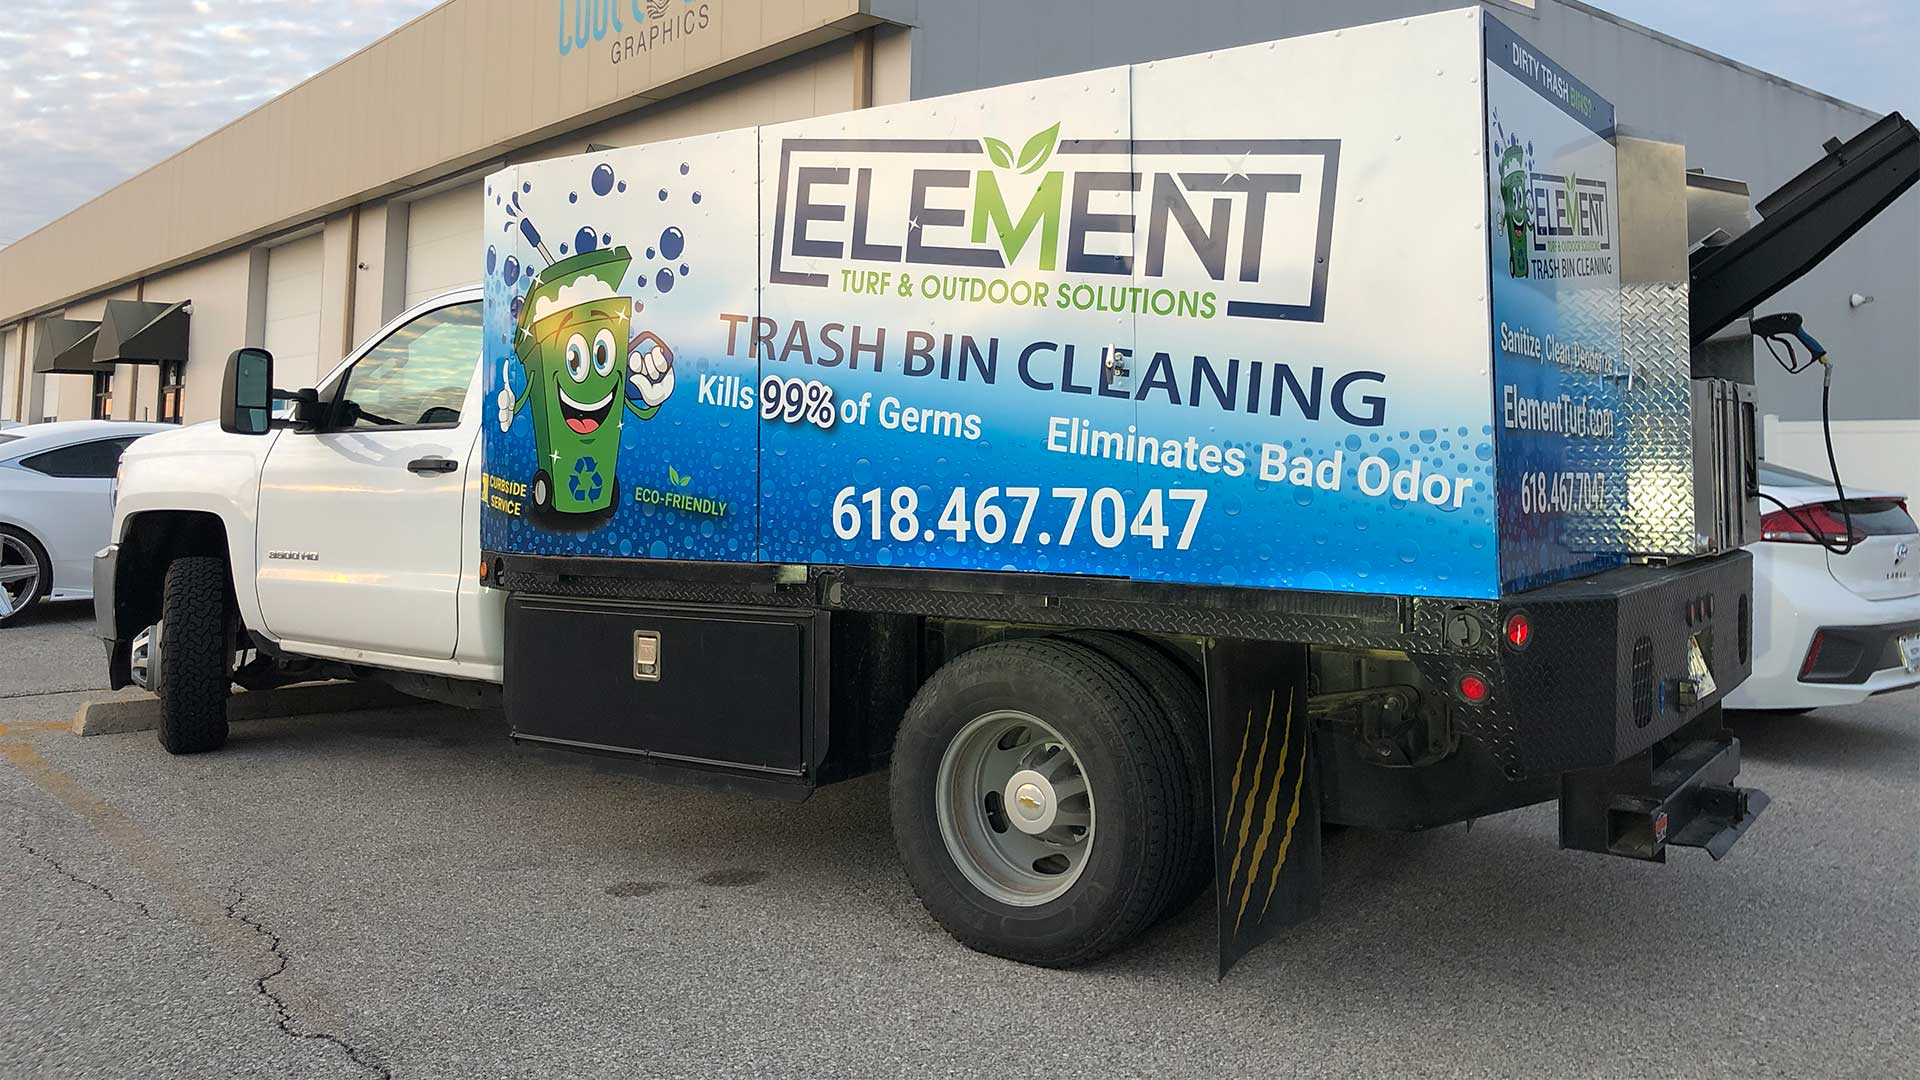 Element Turf & Outdoor Solutions, LLC trash bin cleaning truck in Godfrey, Illinois.